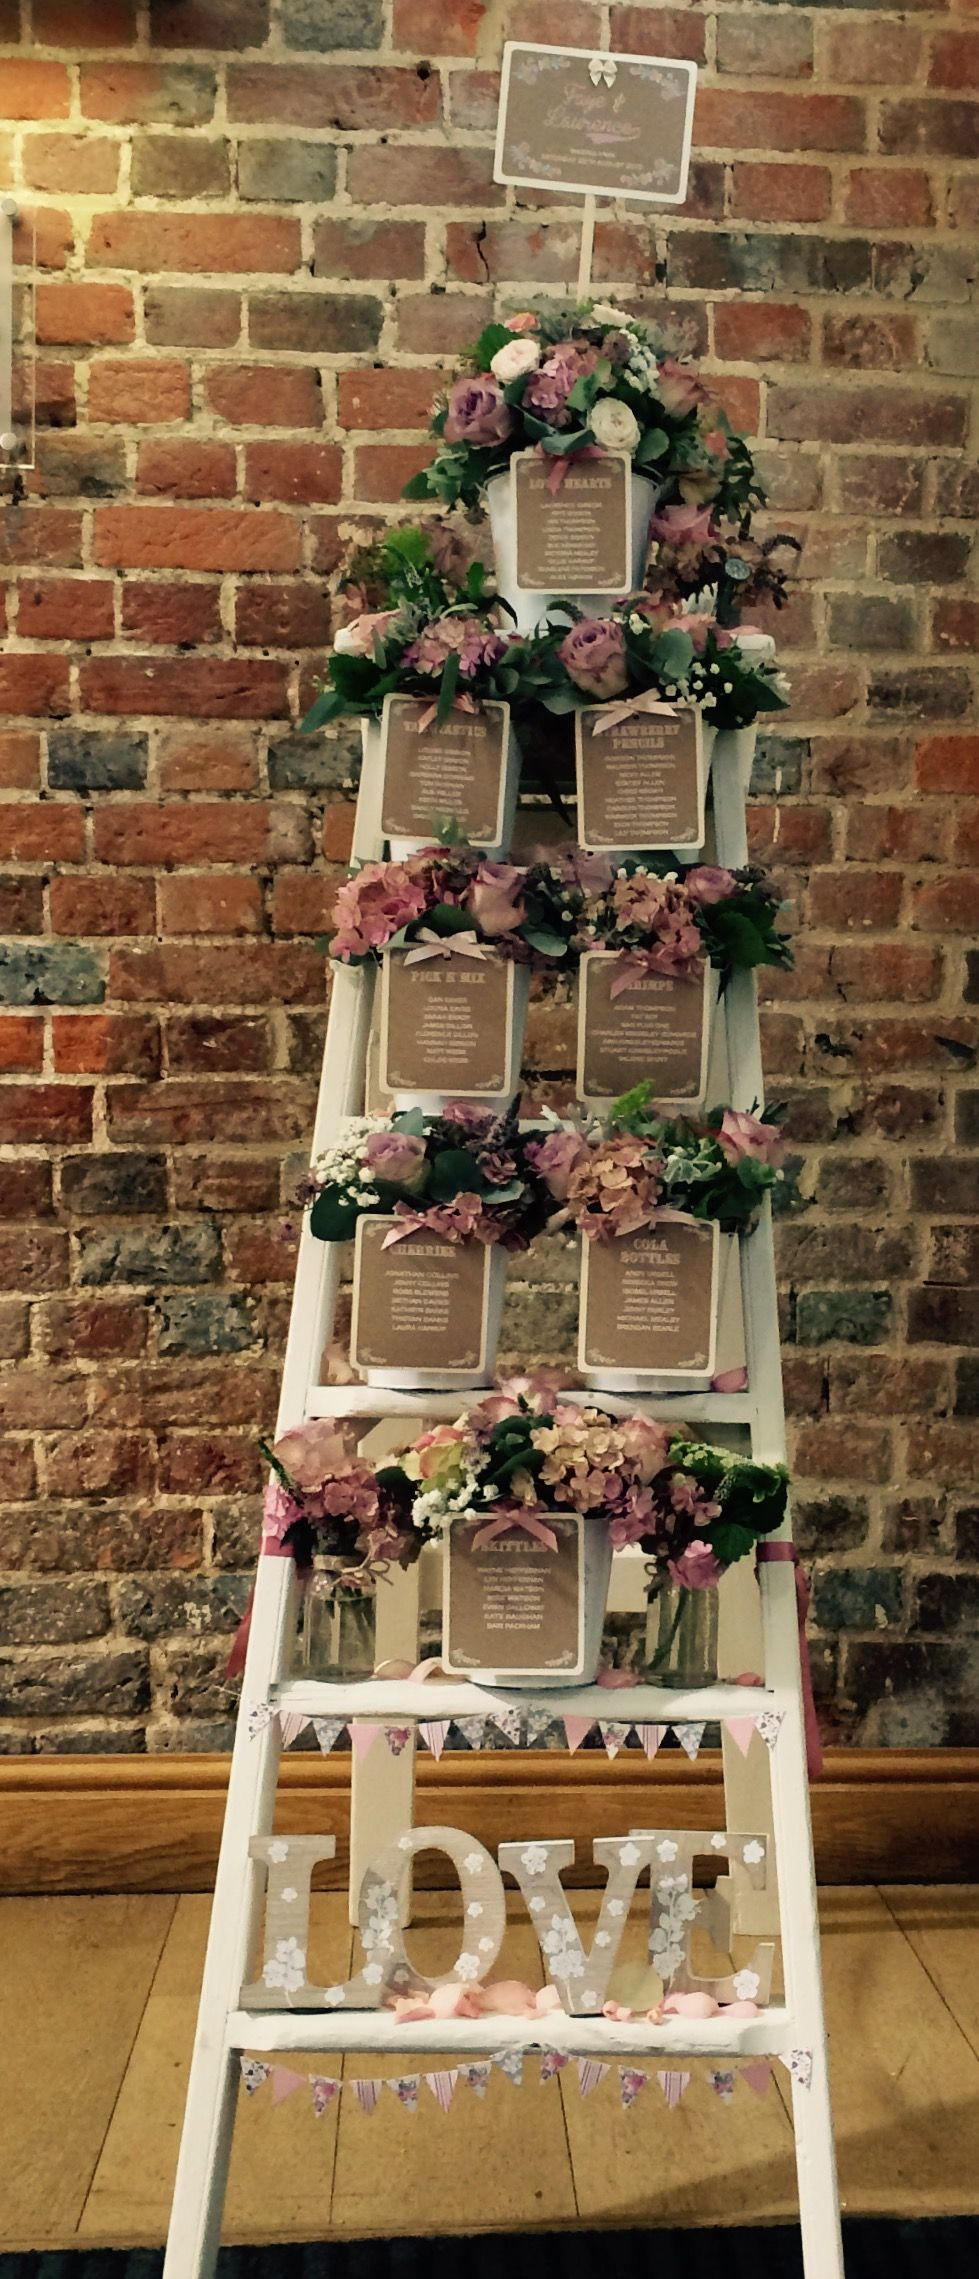 Country Vintage Chic Creative Seating Plan Ideas Inspiration At Wasing Park Near Newbury